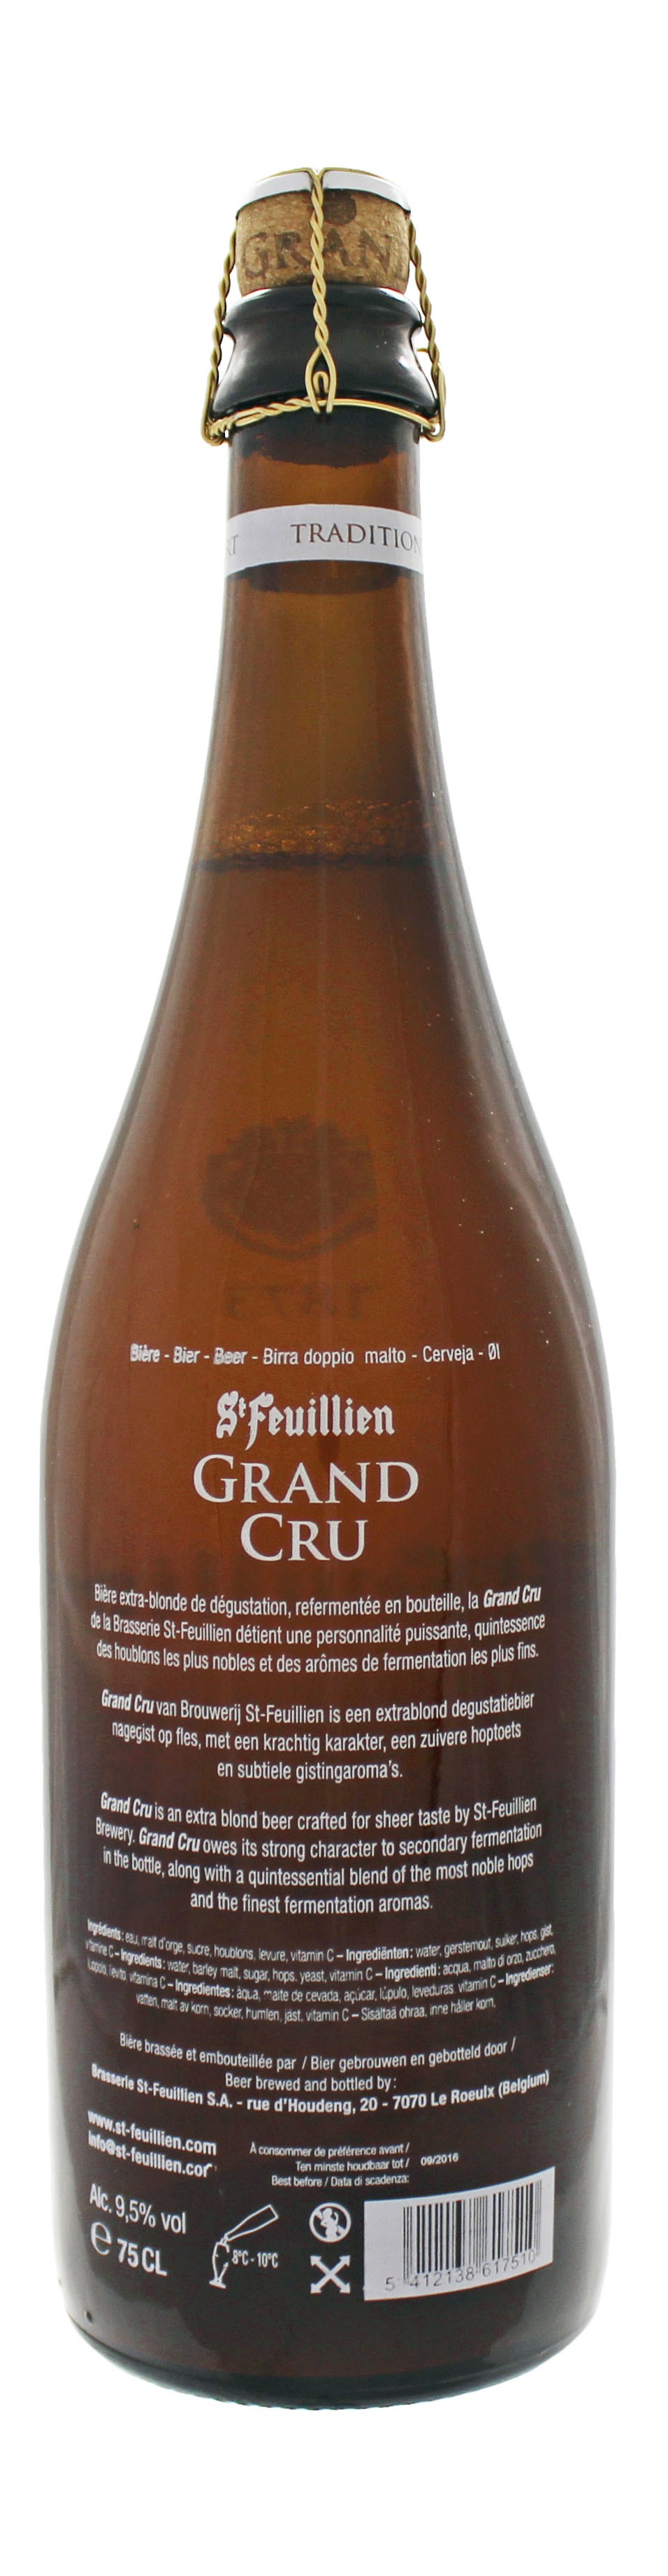 Photo de face de St Feuillien Grand Cru